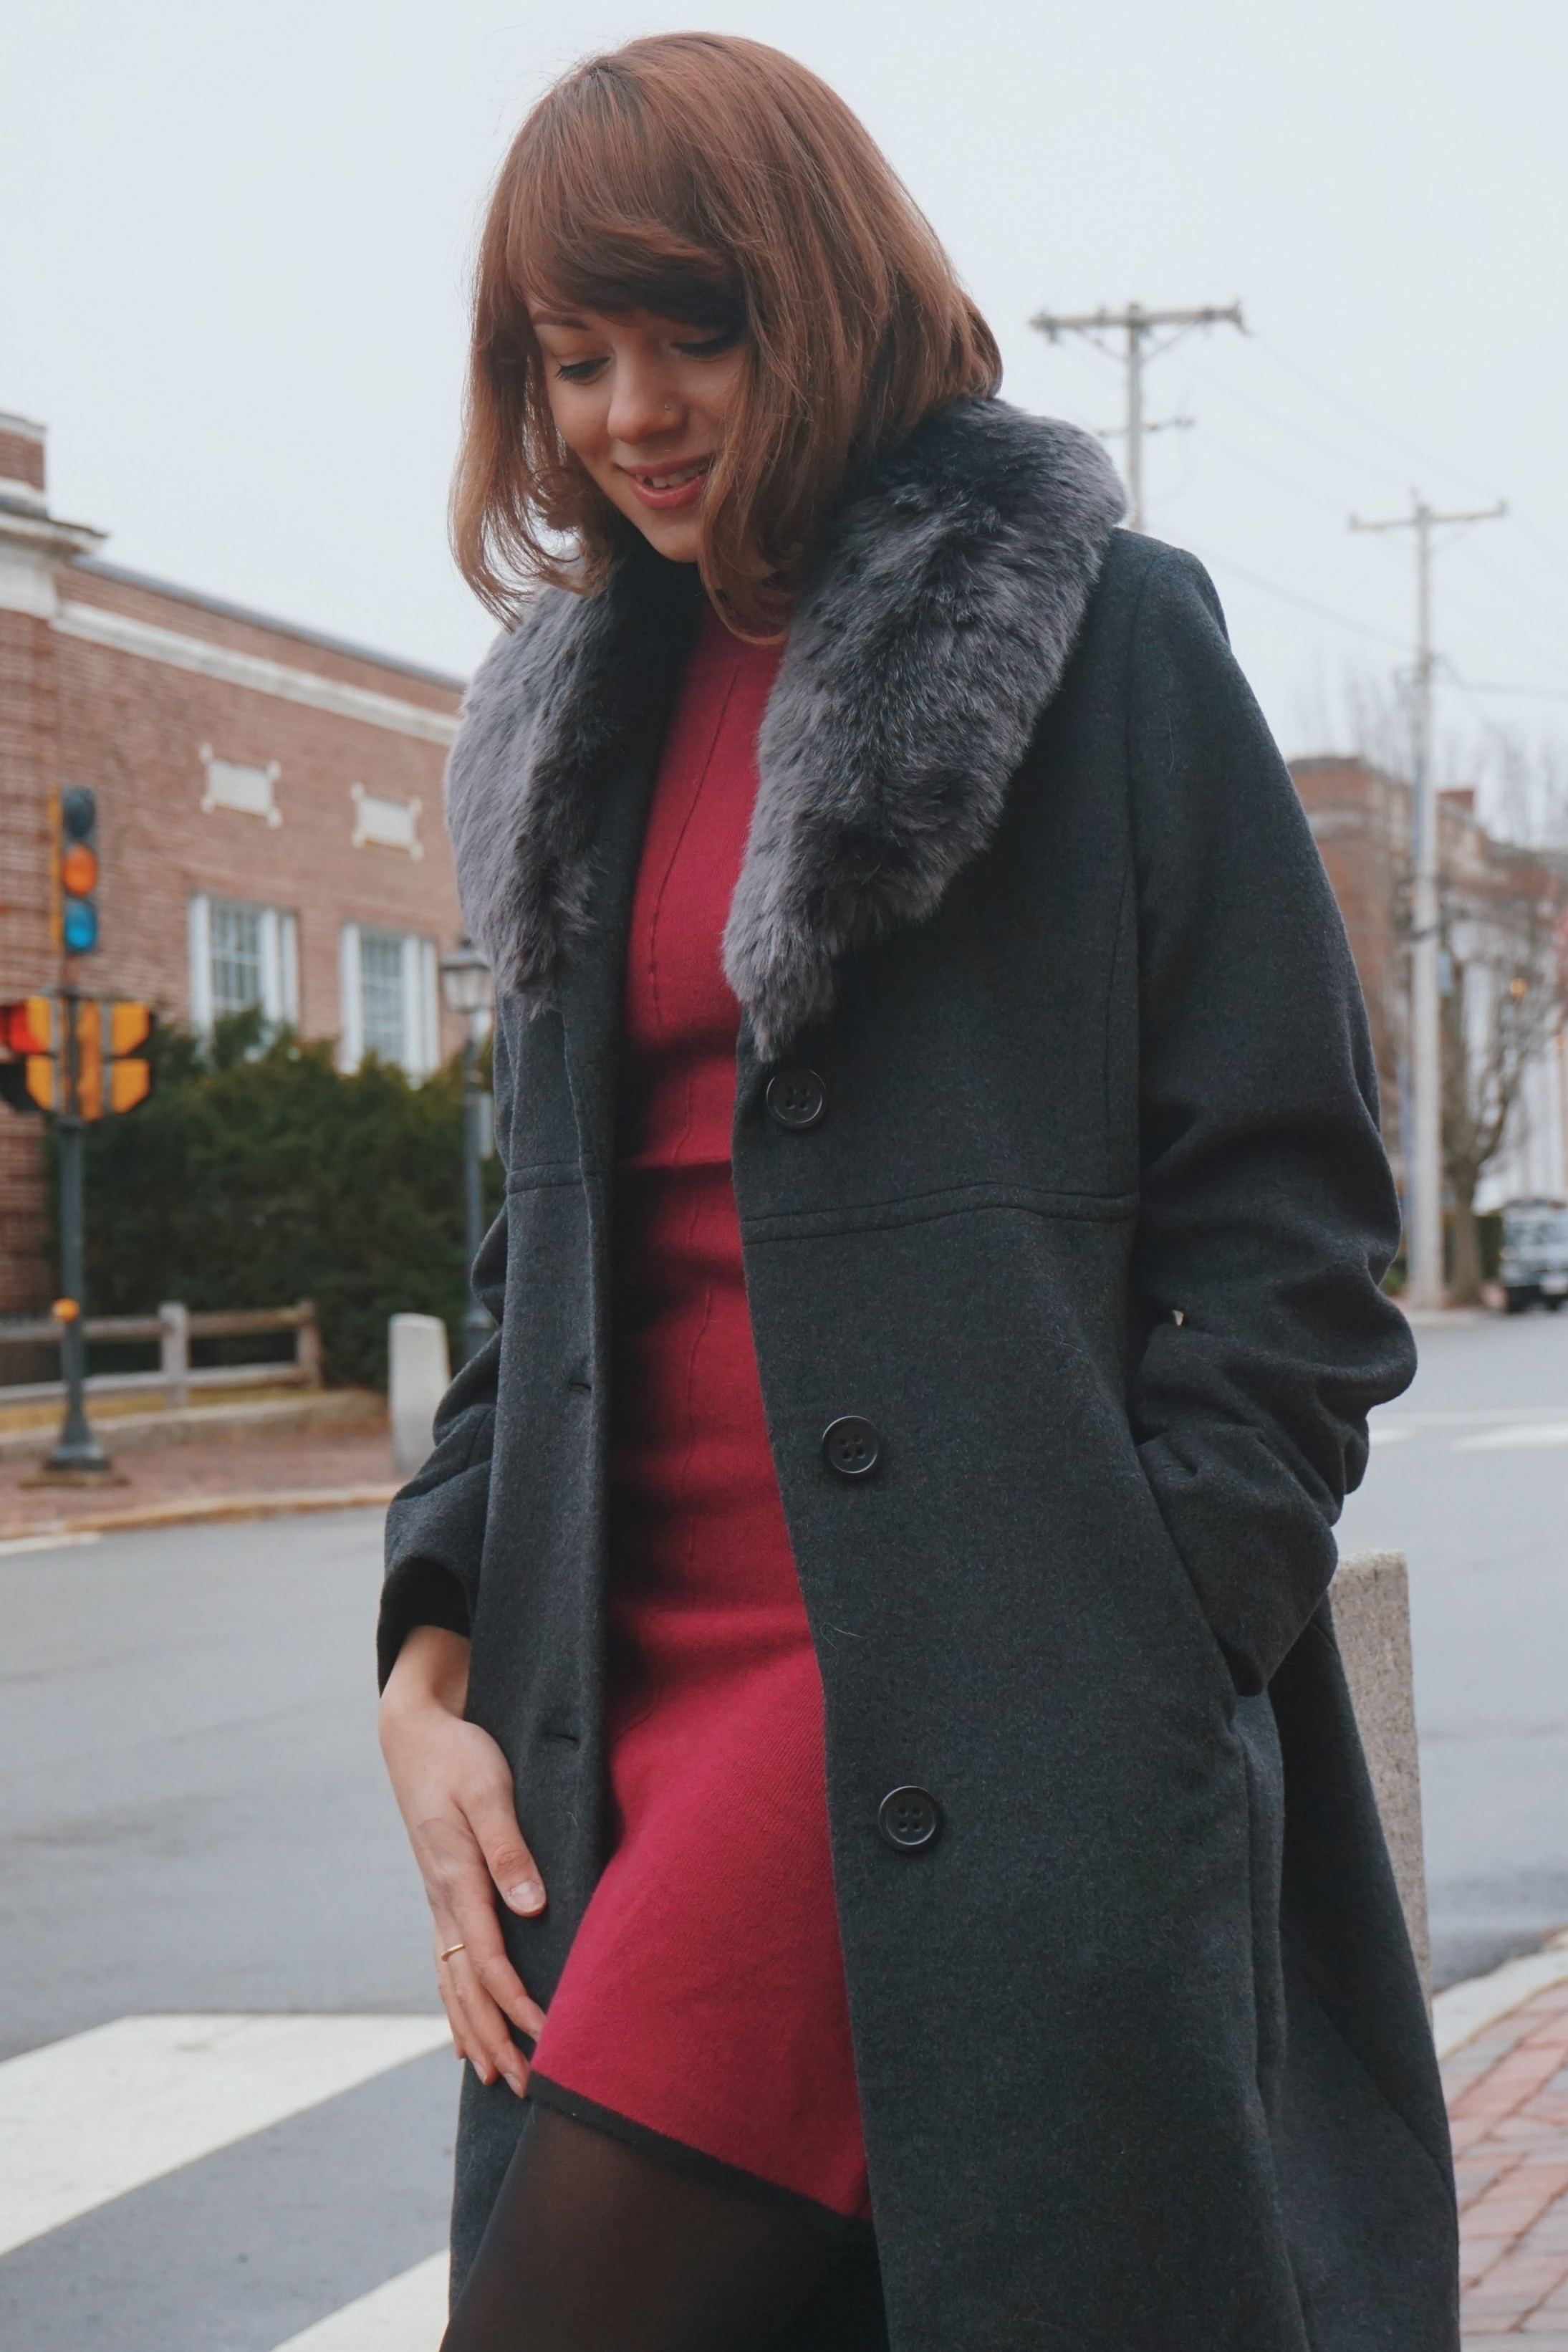 A close-up of a fashion blogger posing in Newburyport.